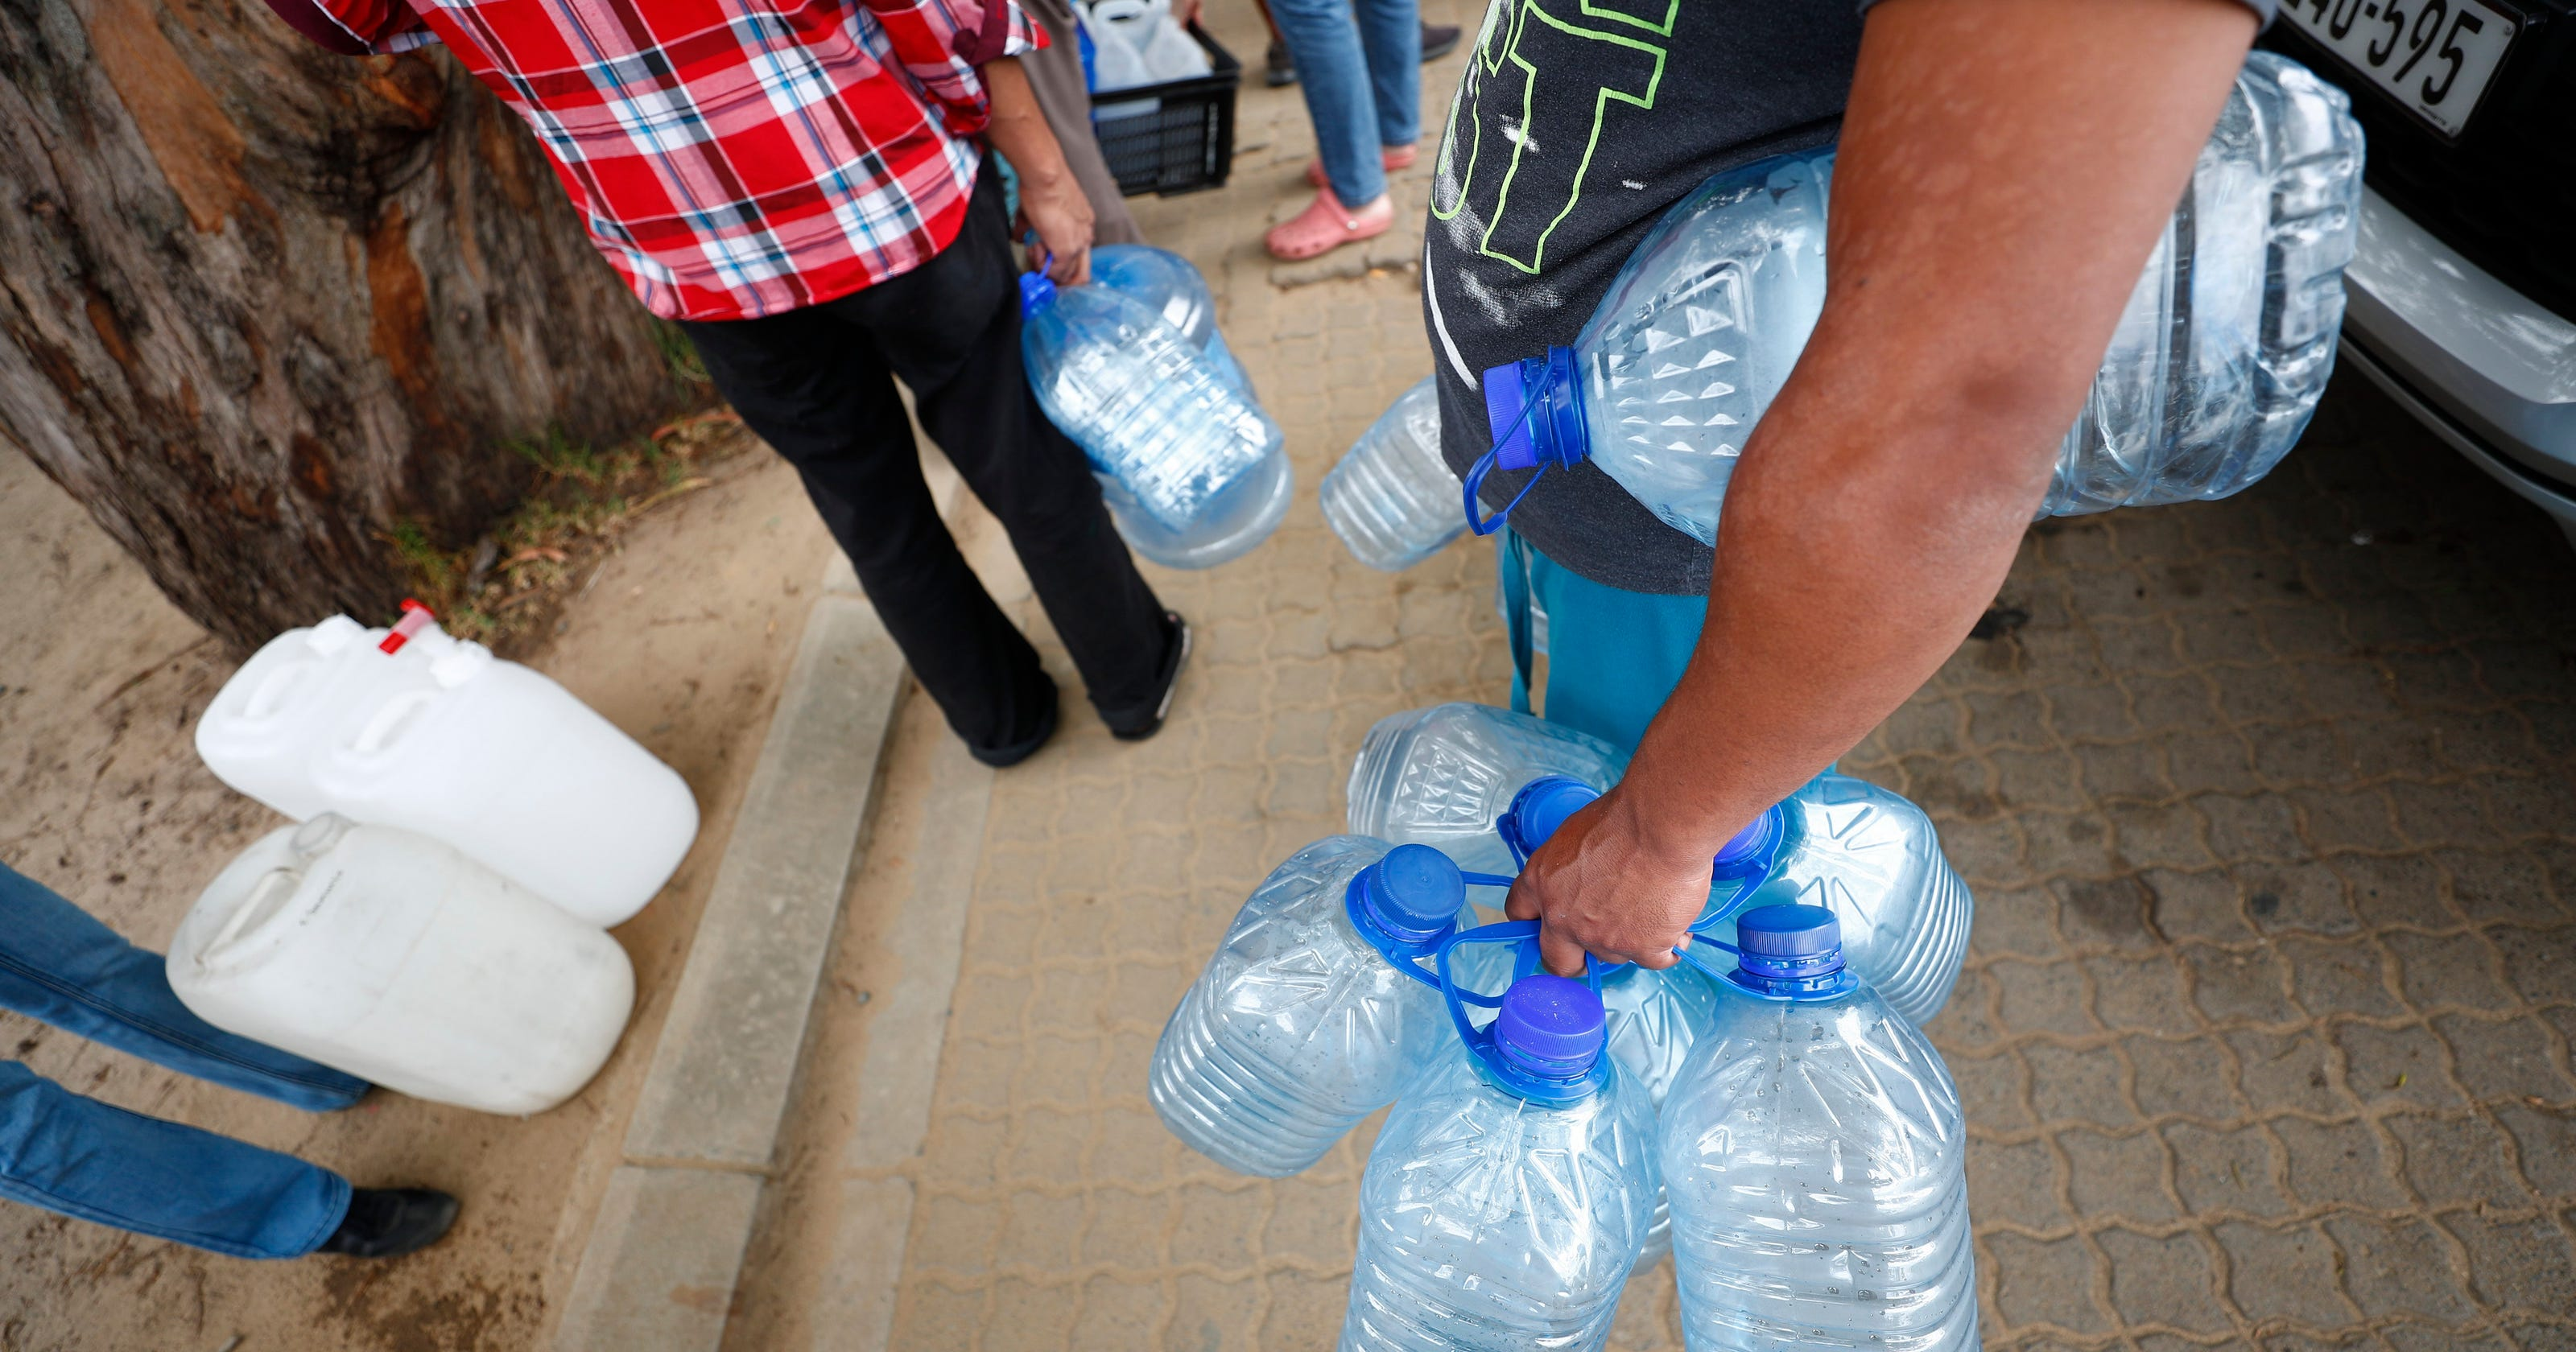 da0c710f8be Cape Town could be the first major city in the world to run out of water